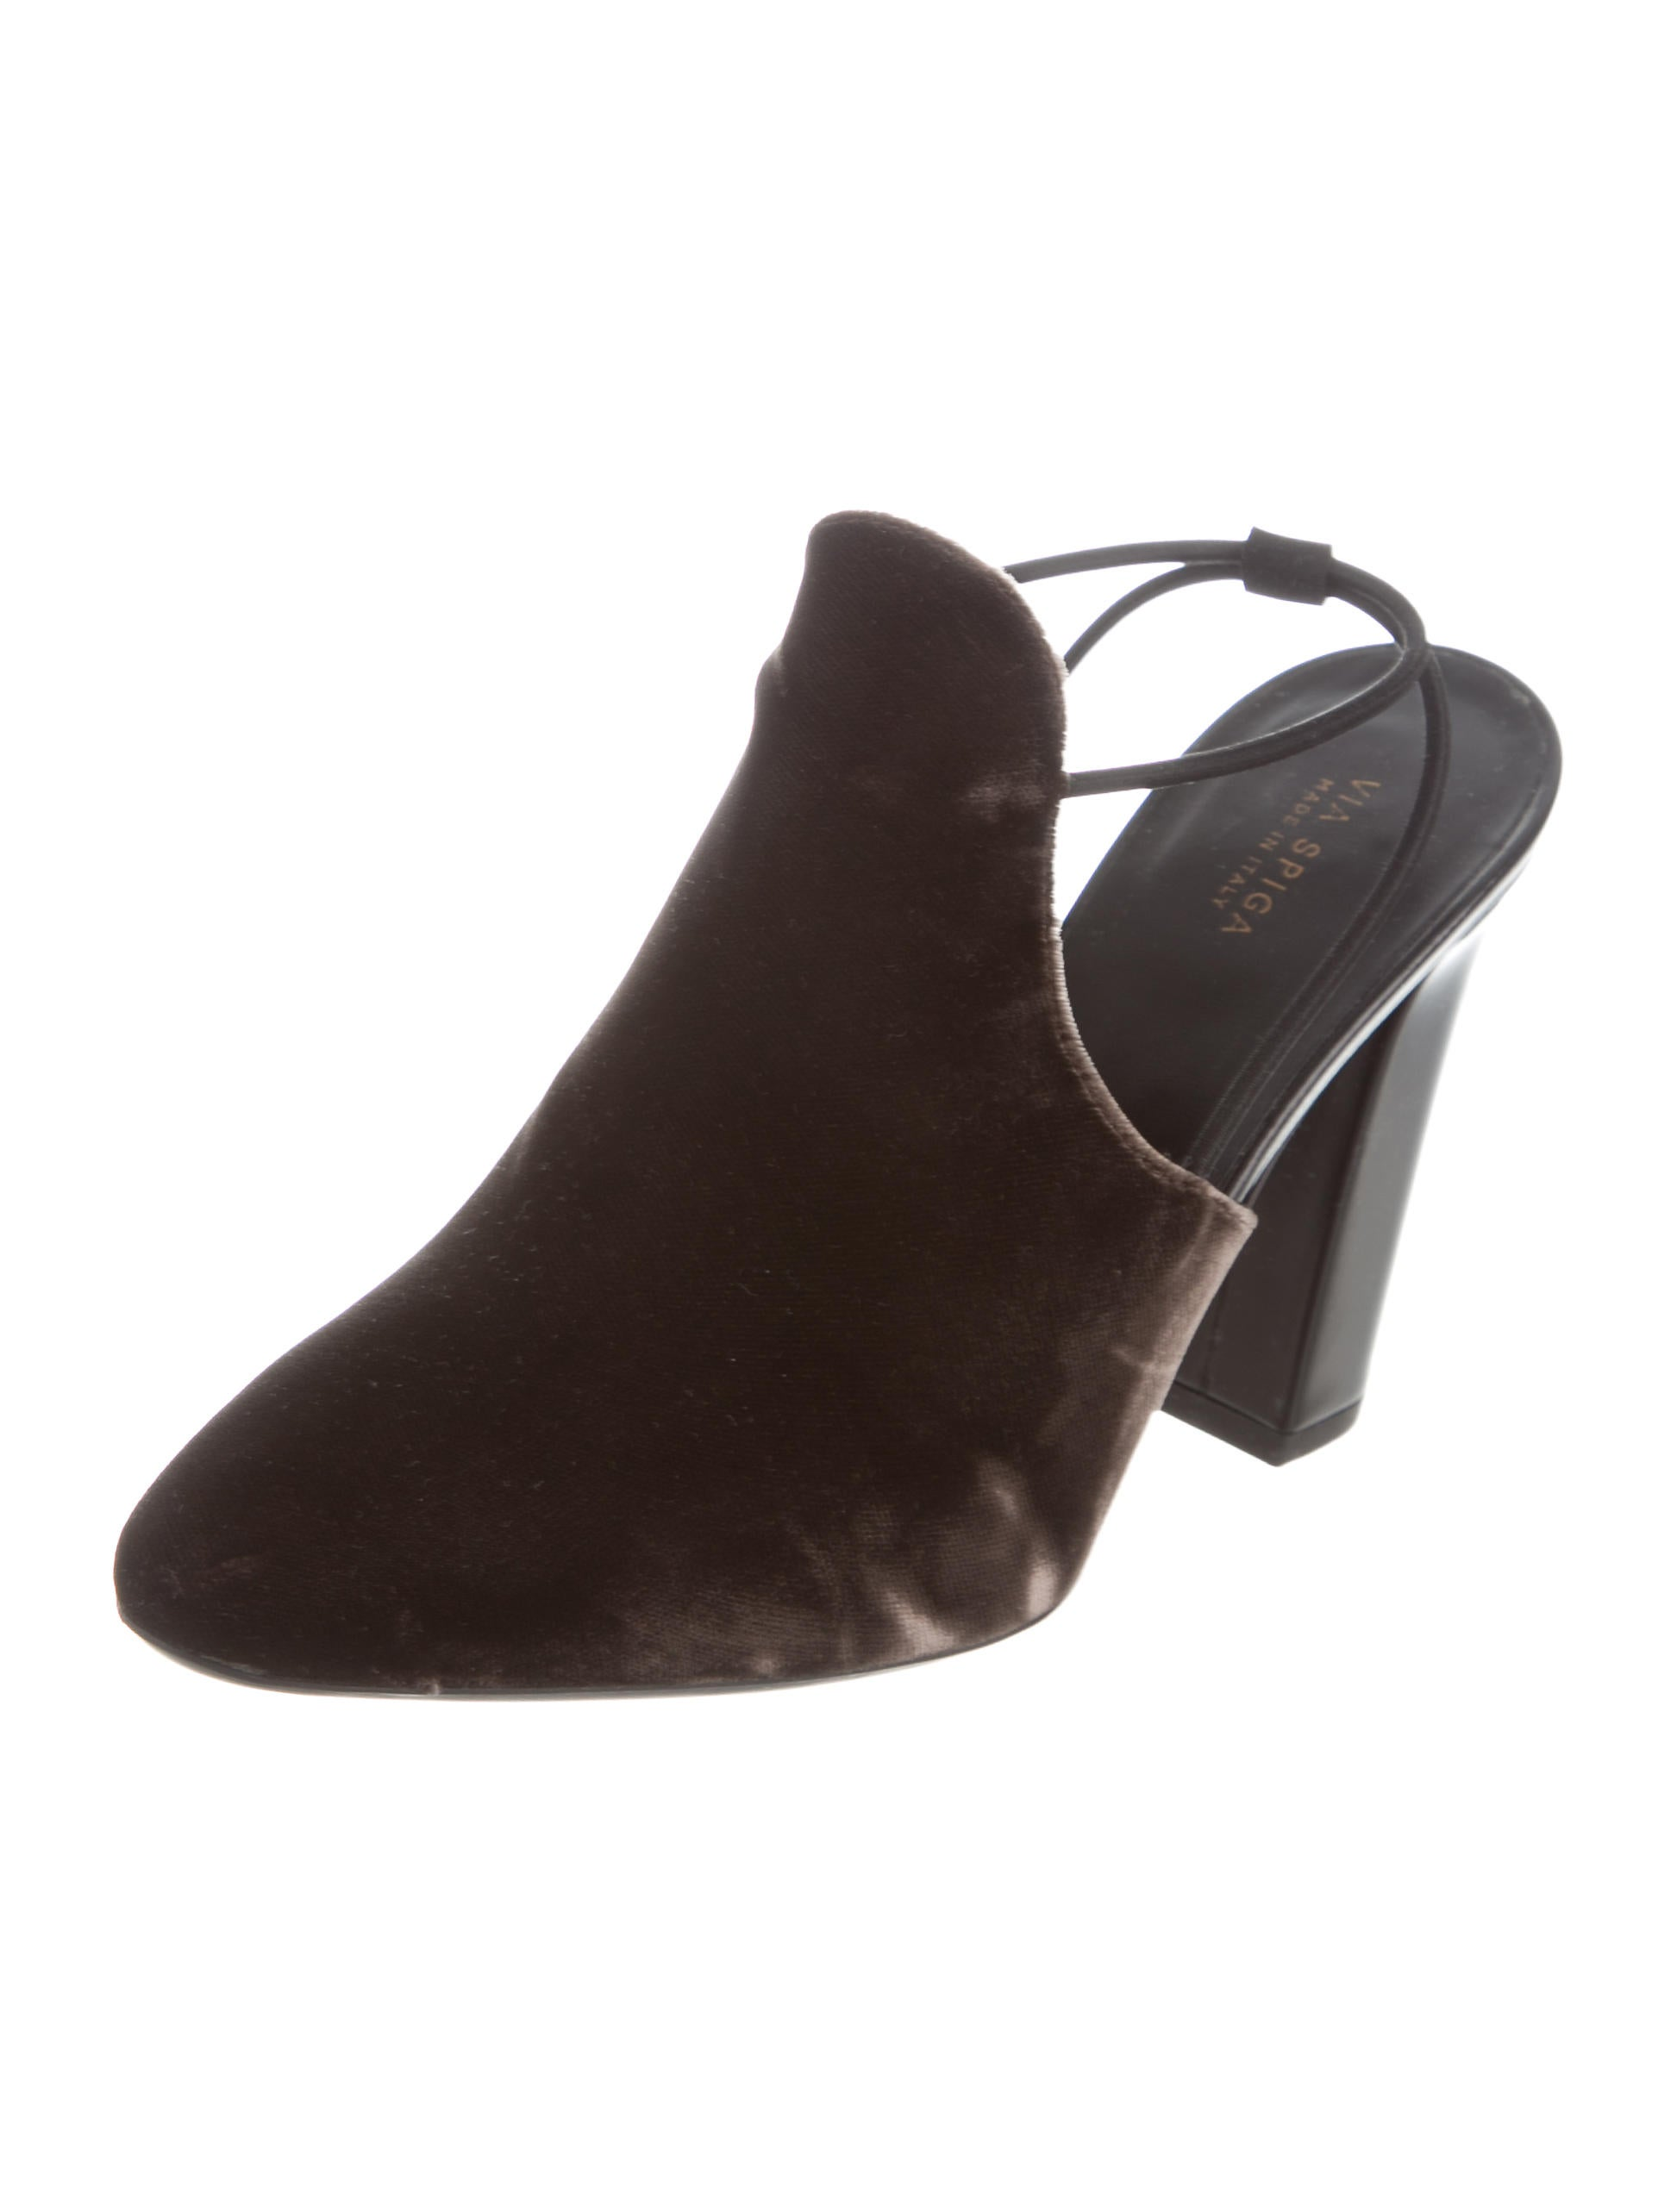 clearance 2015 buy cheap online Via Spiga Velvet Slingback Pumps wide range of online g3eubhsvT